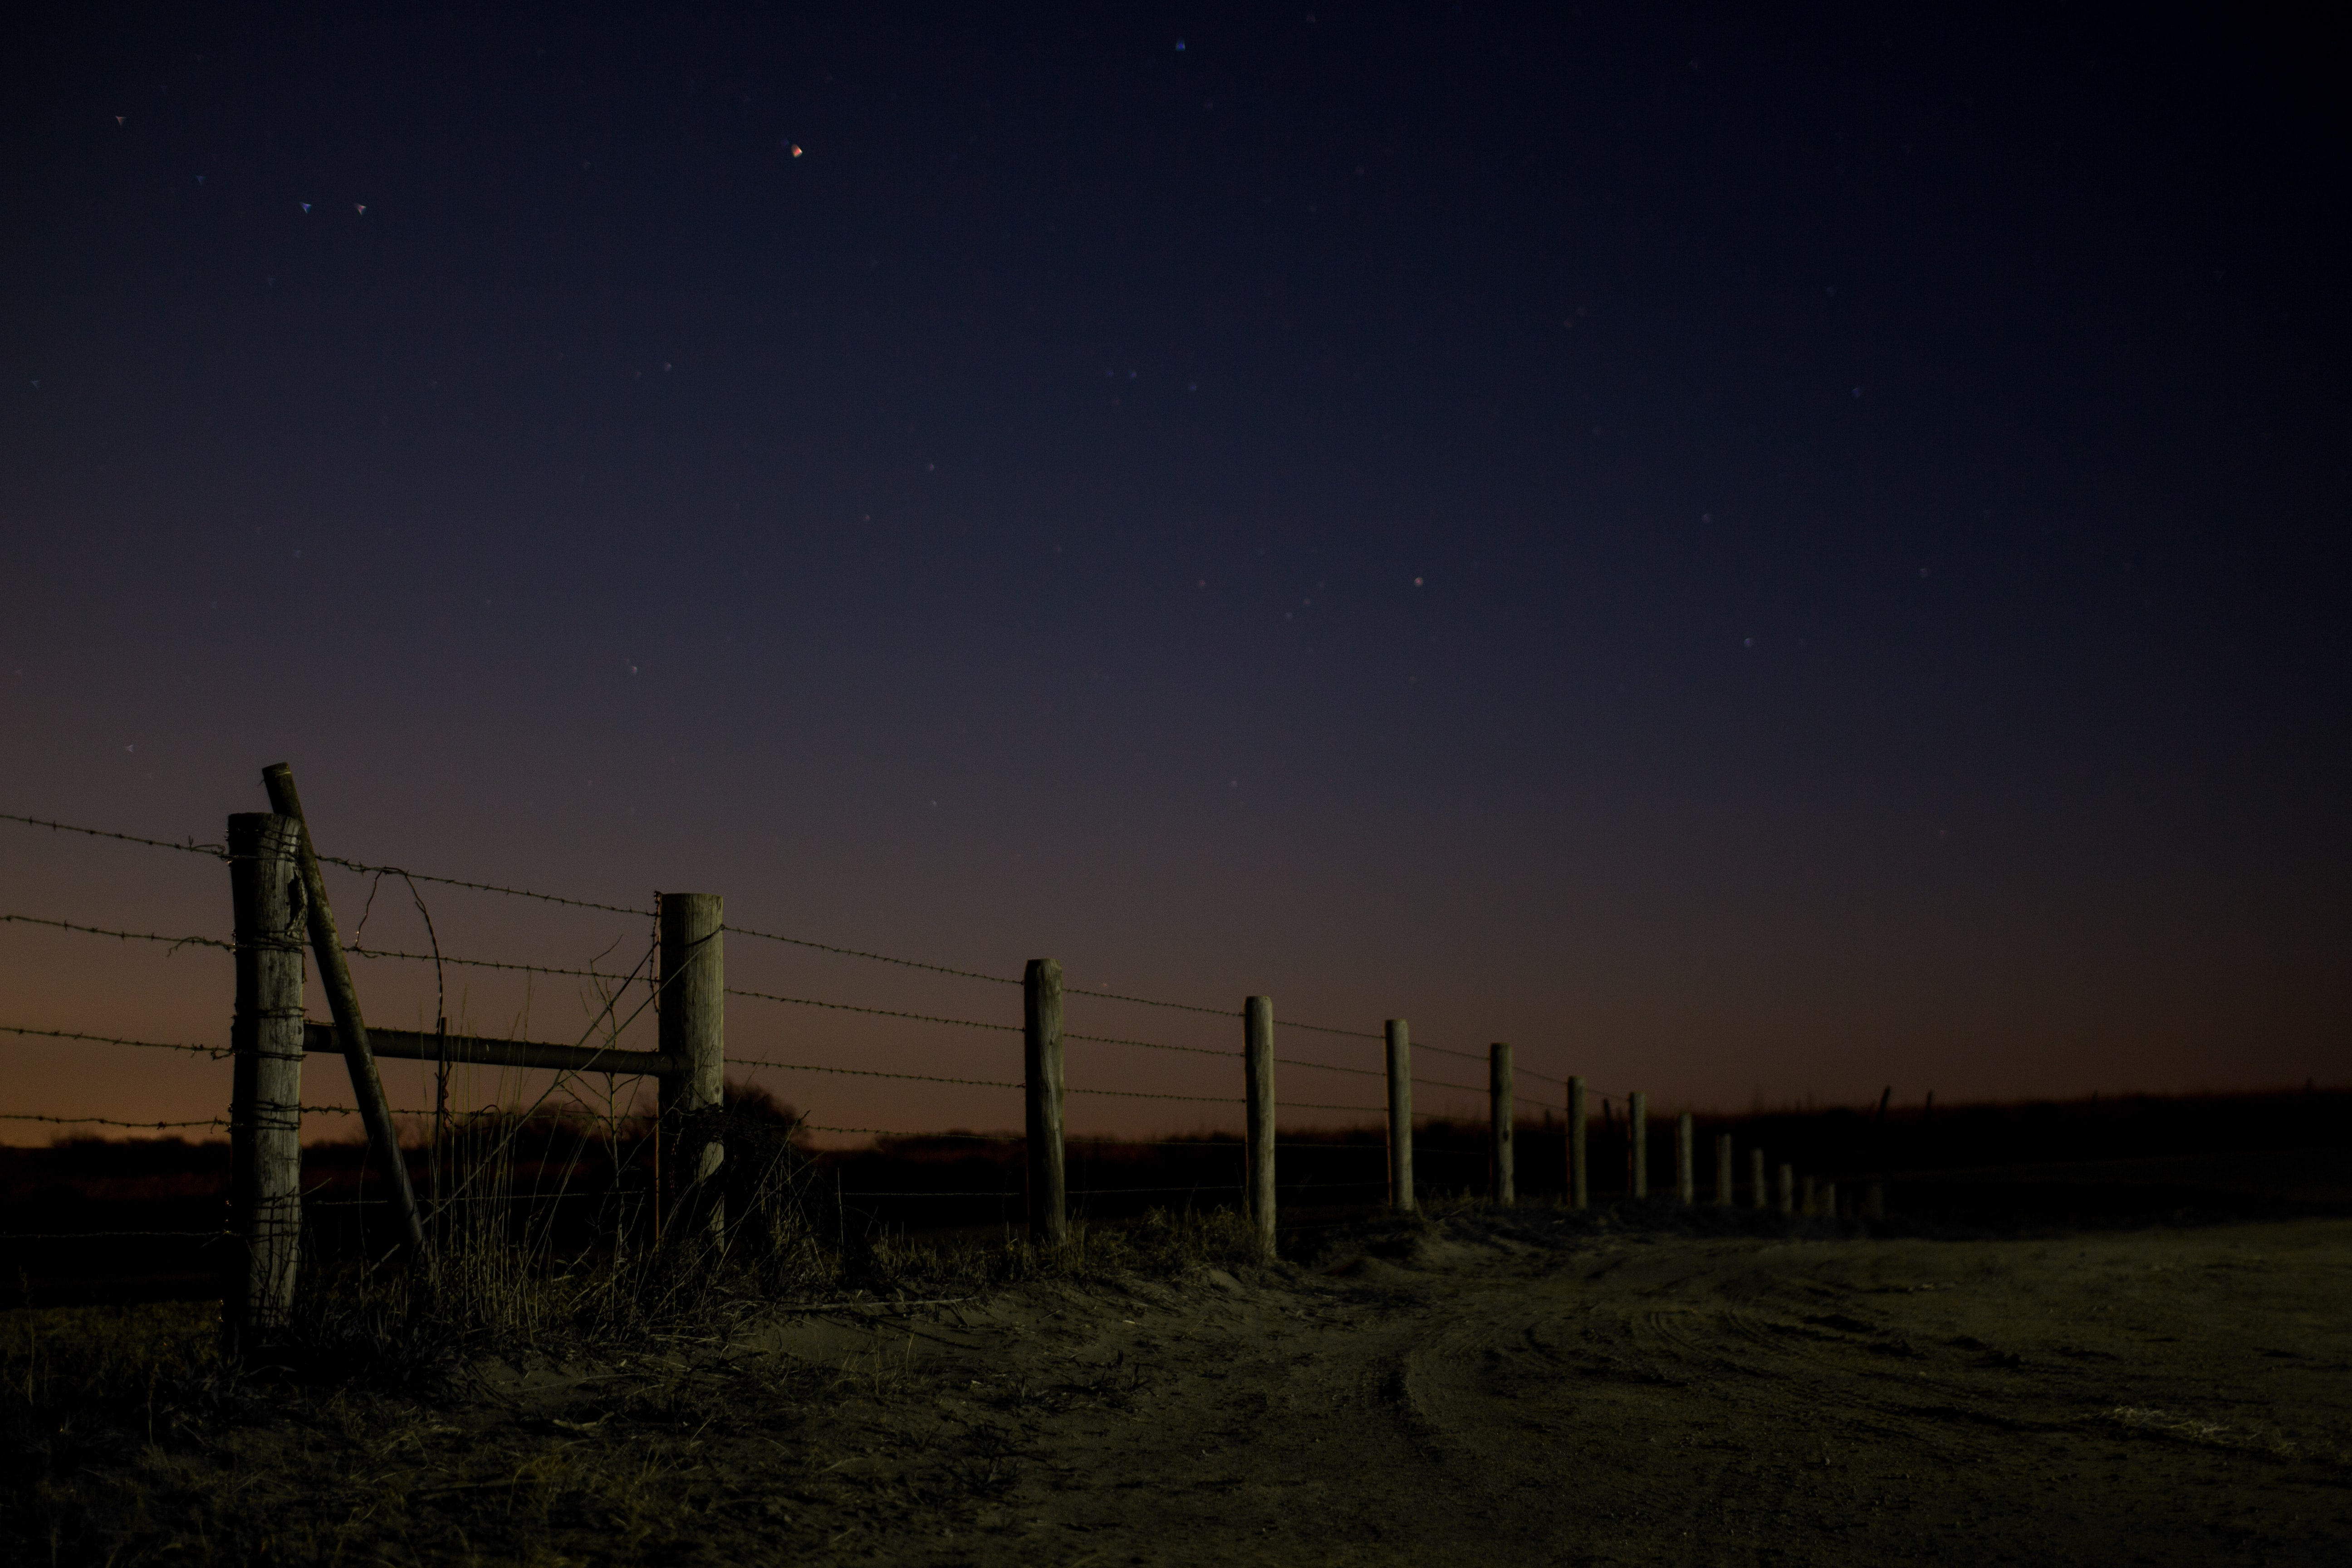 landscape photo of pole and wire fence during nighttime